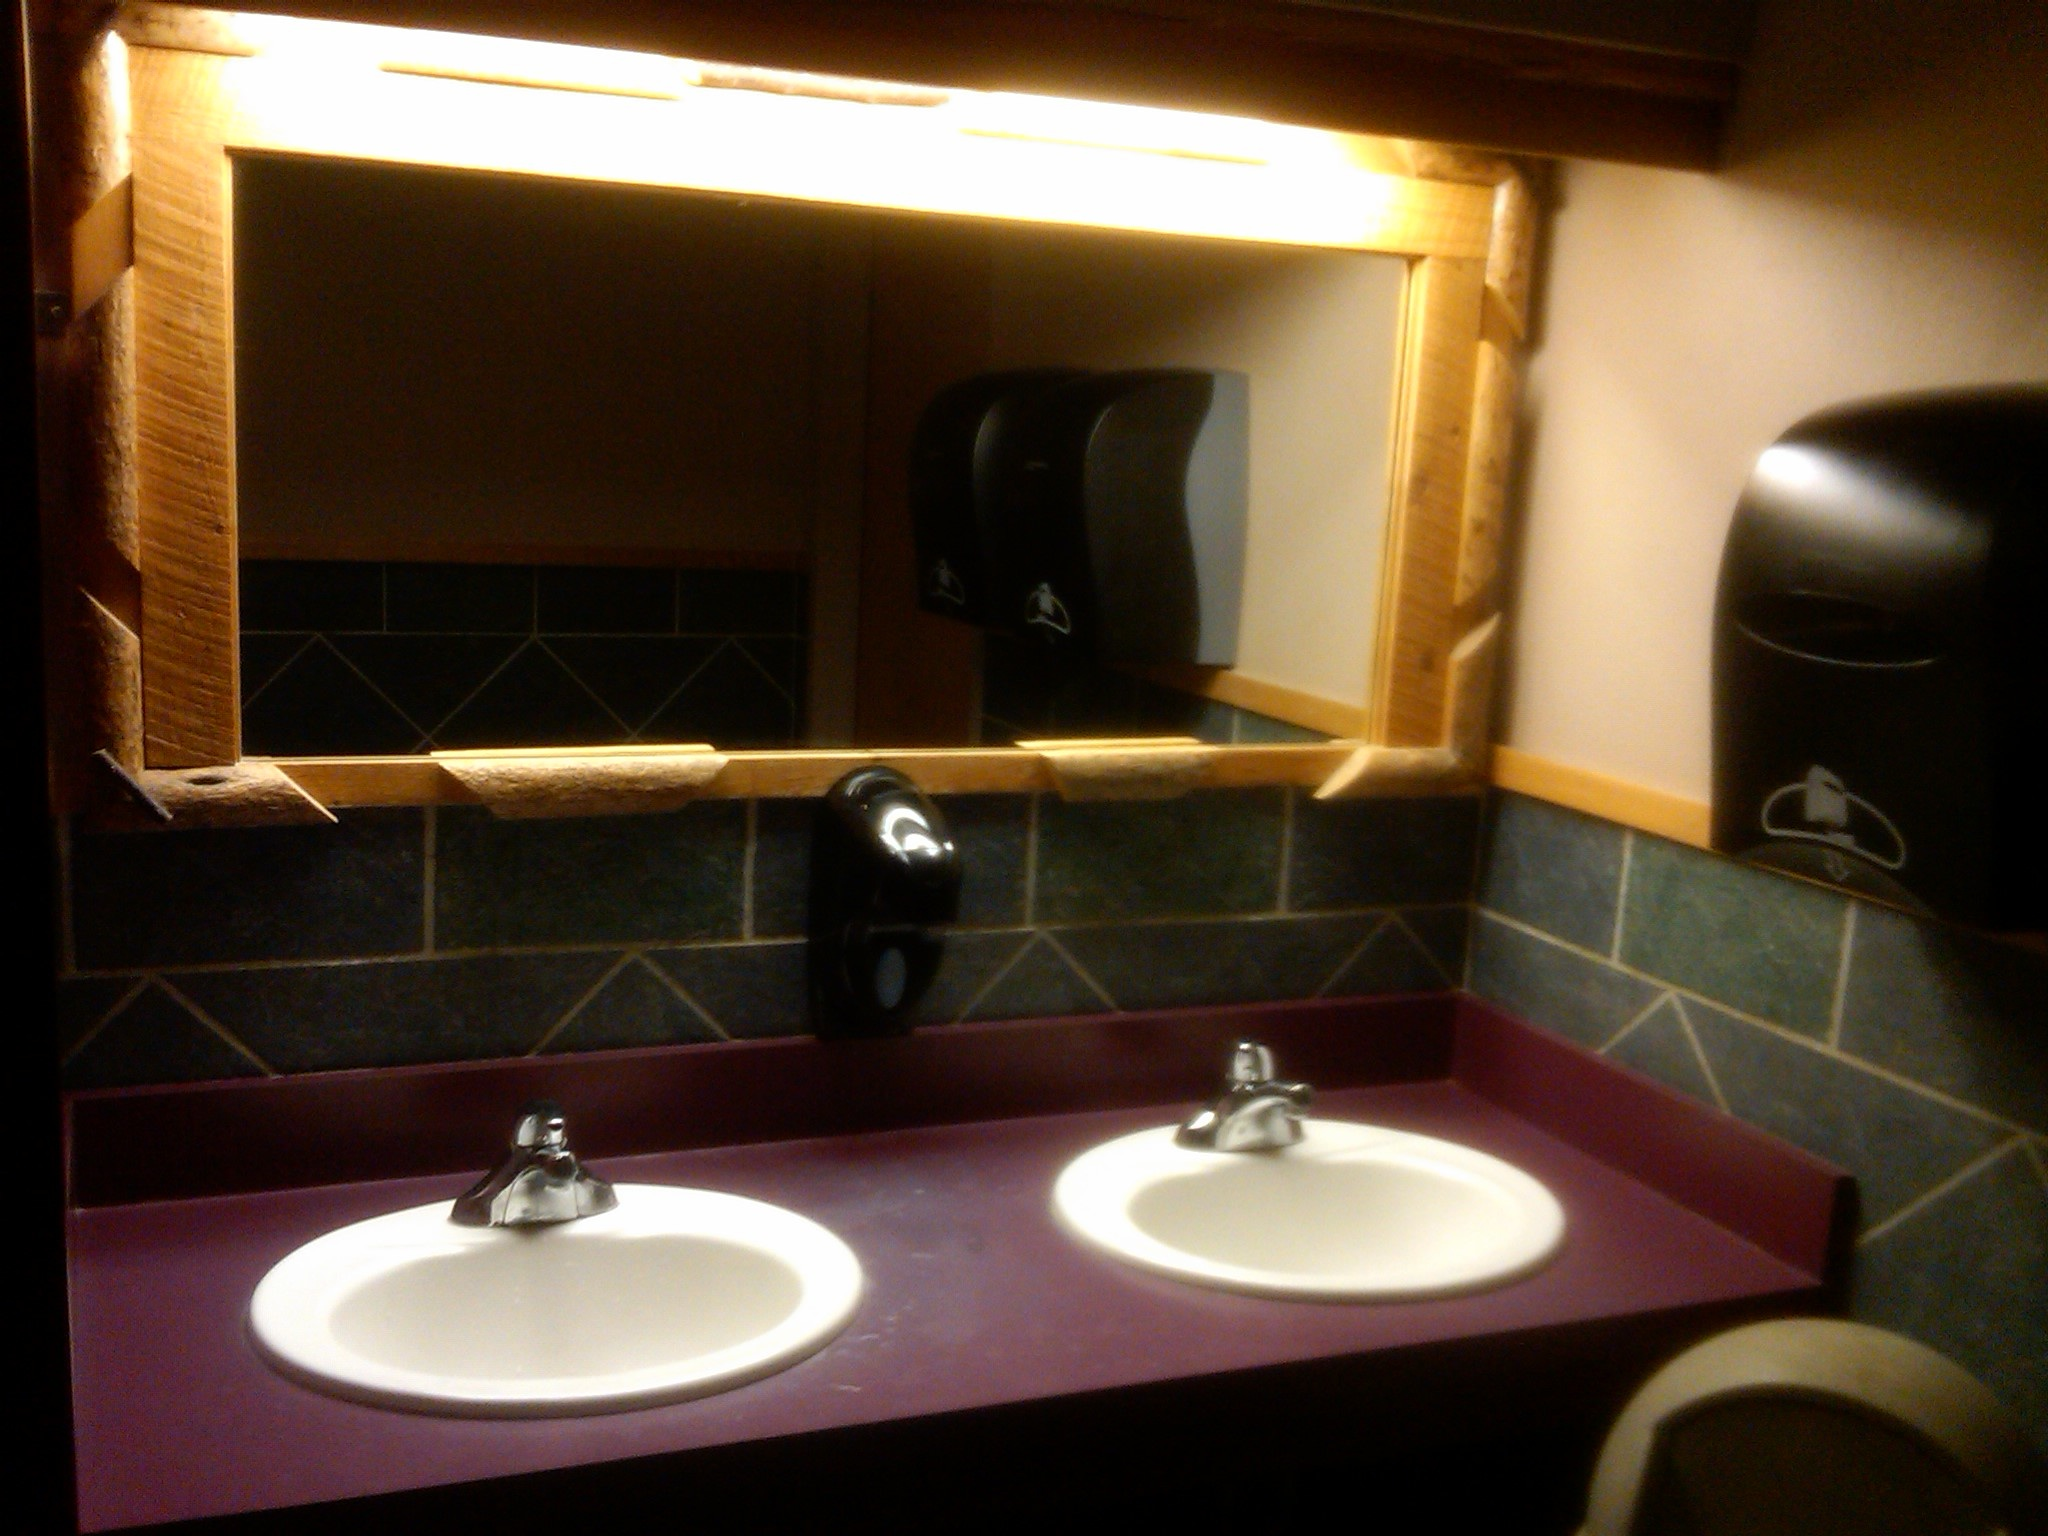 The Bathroom Snob Public Restroom Reviews For Picky People